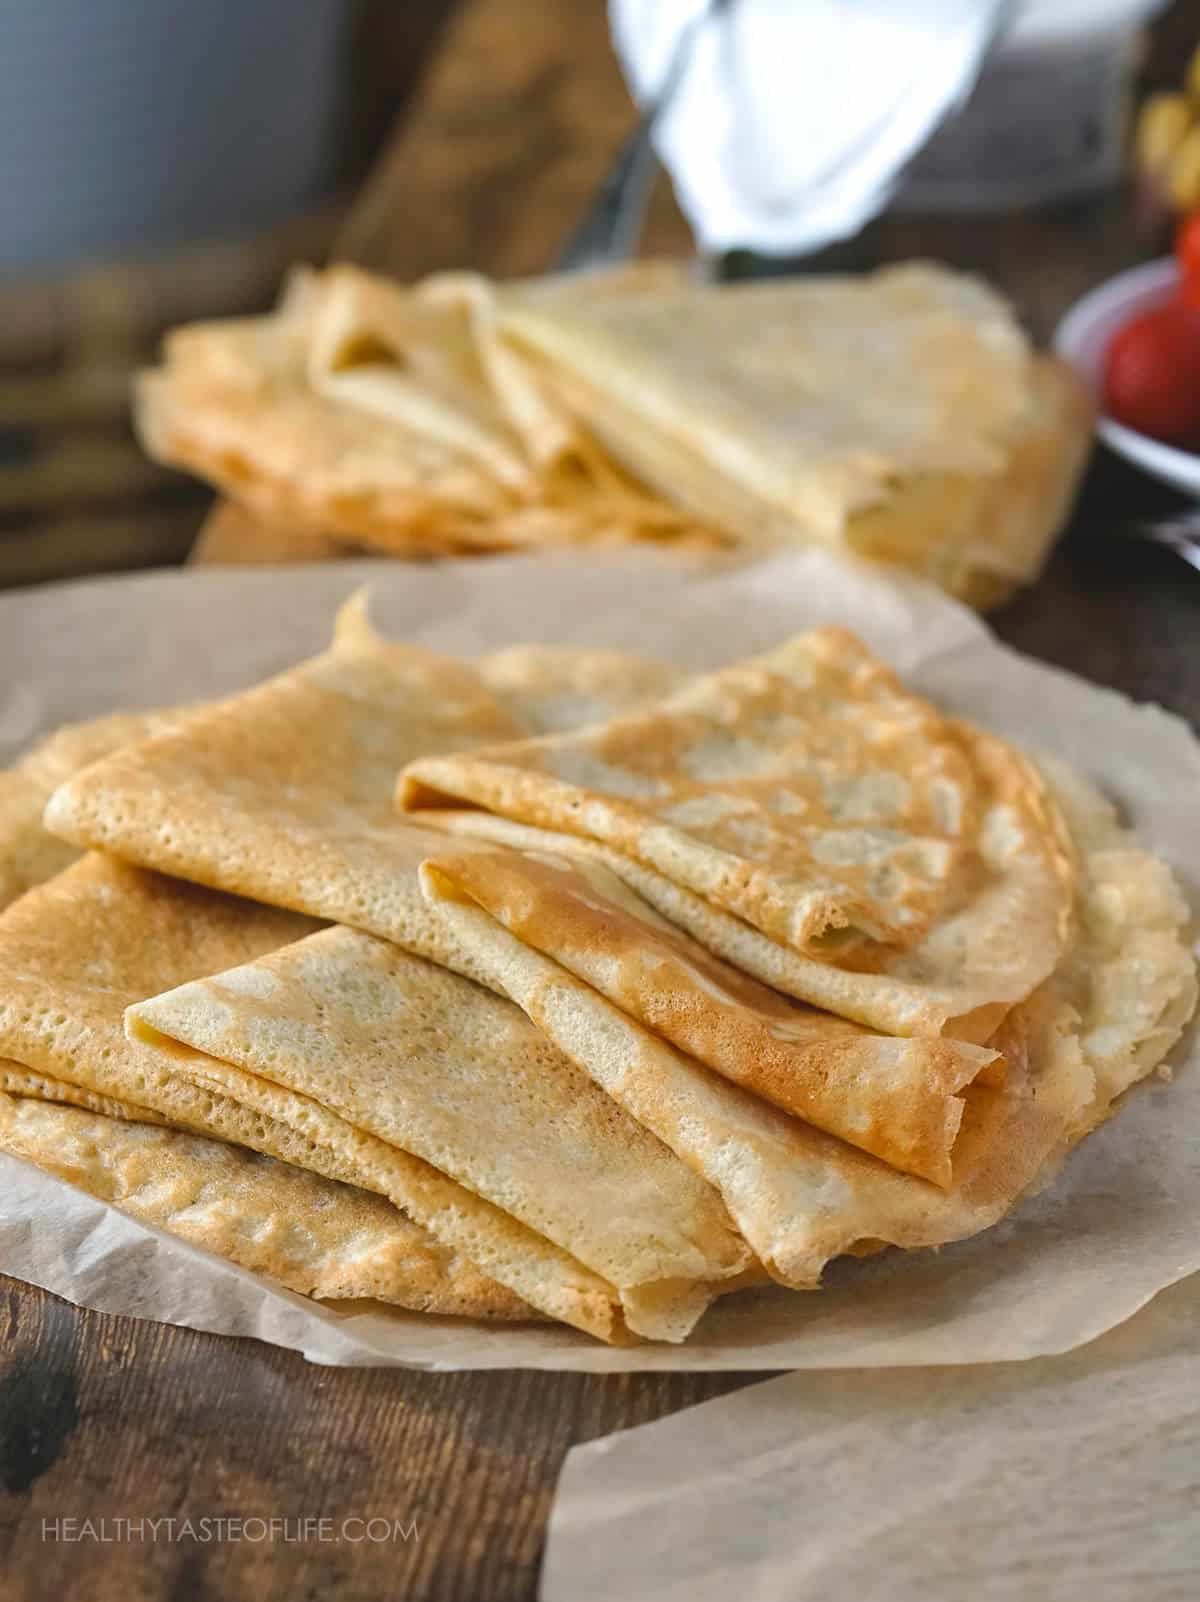 These easy healthy gluten free crepes are made in a blender and can be served sweet or savory.